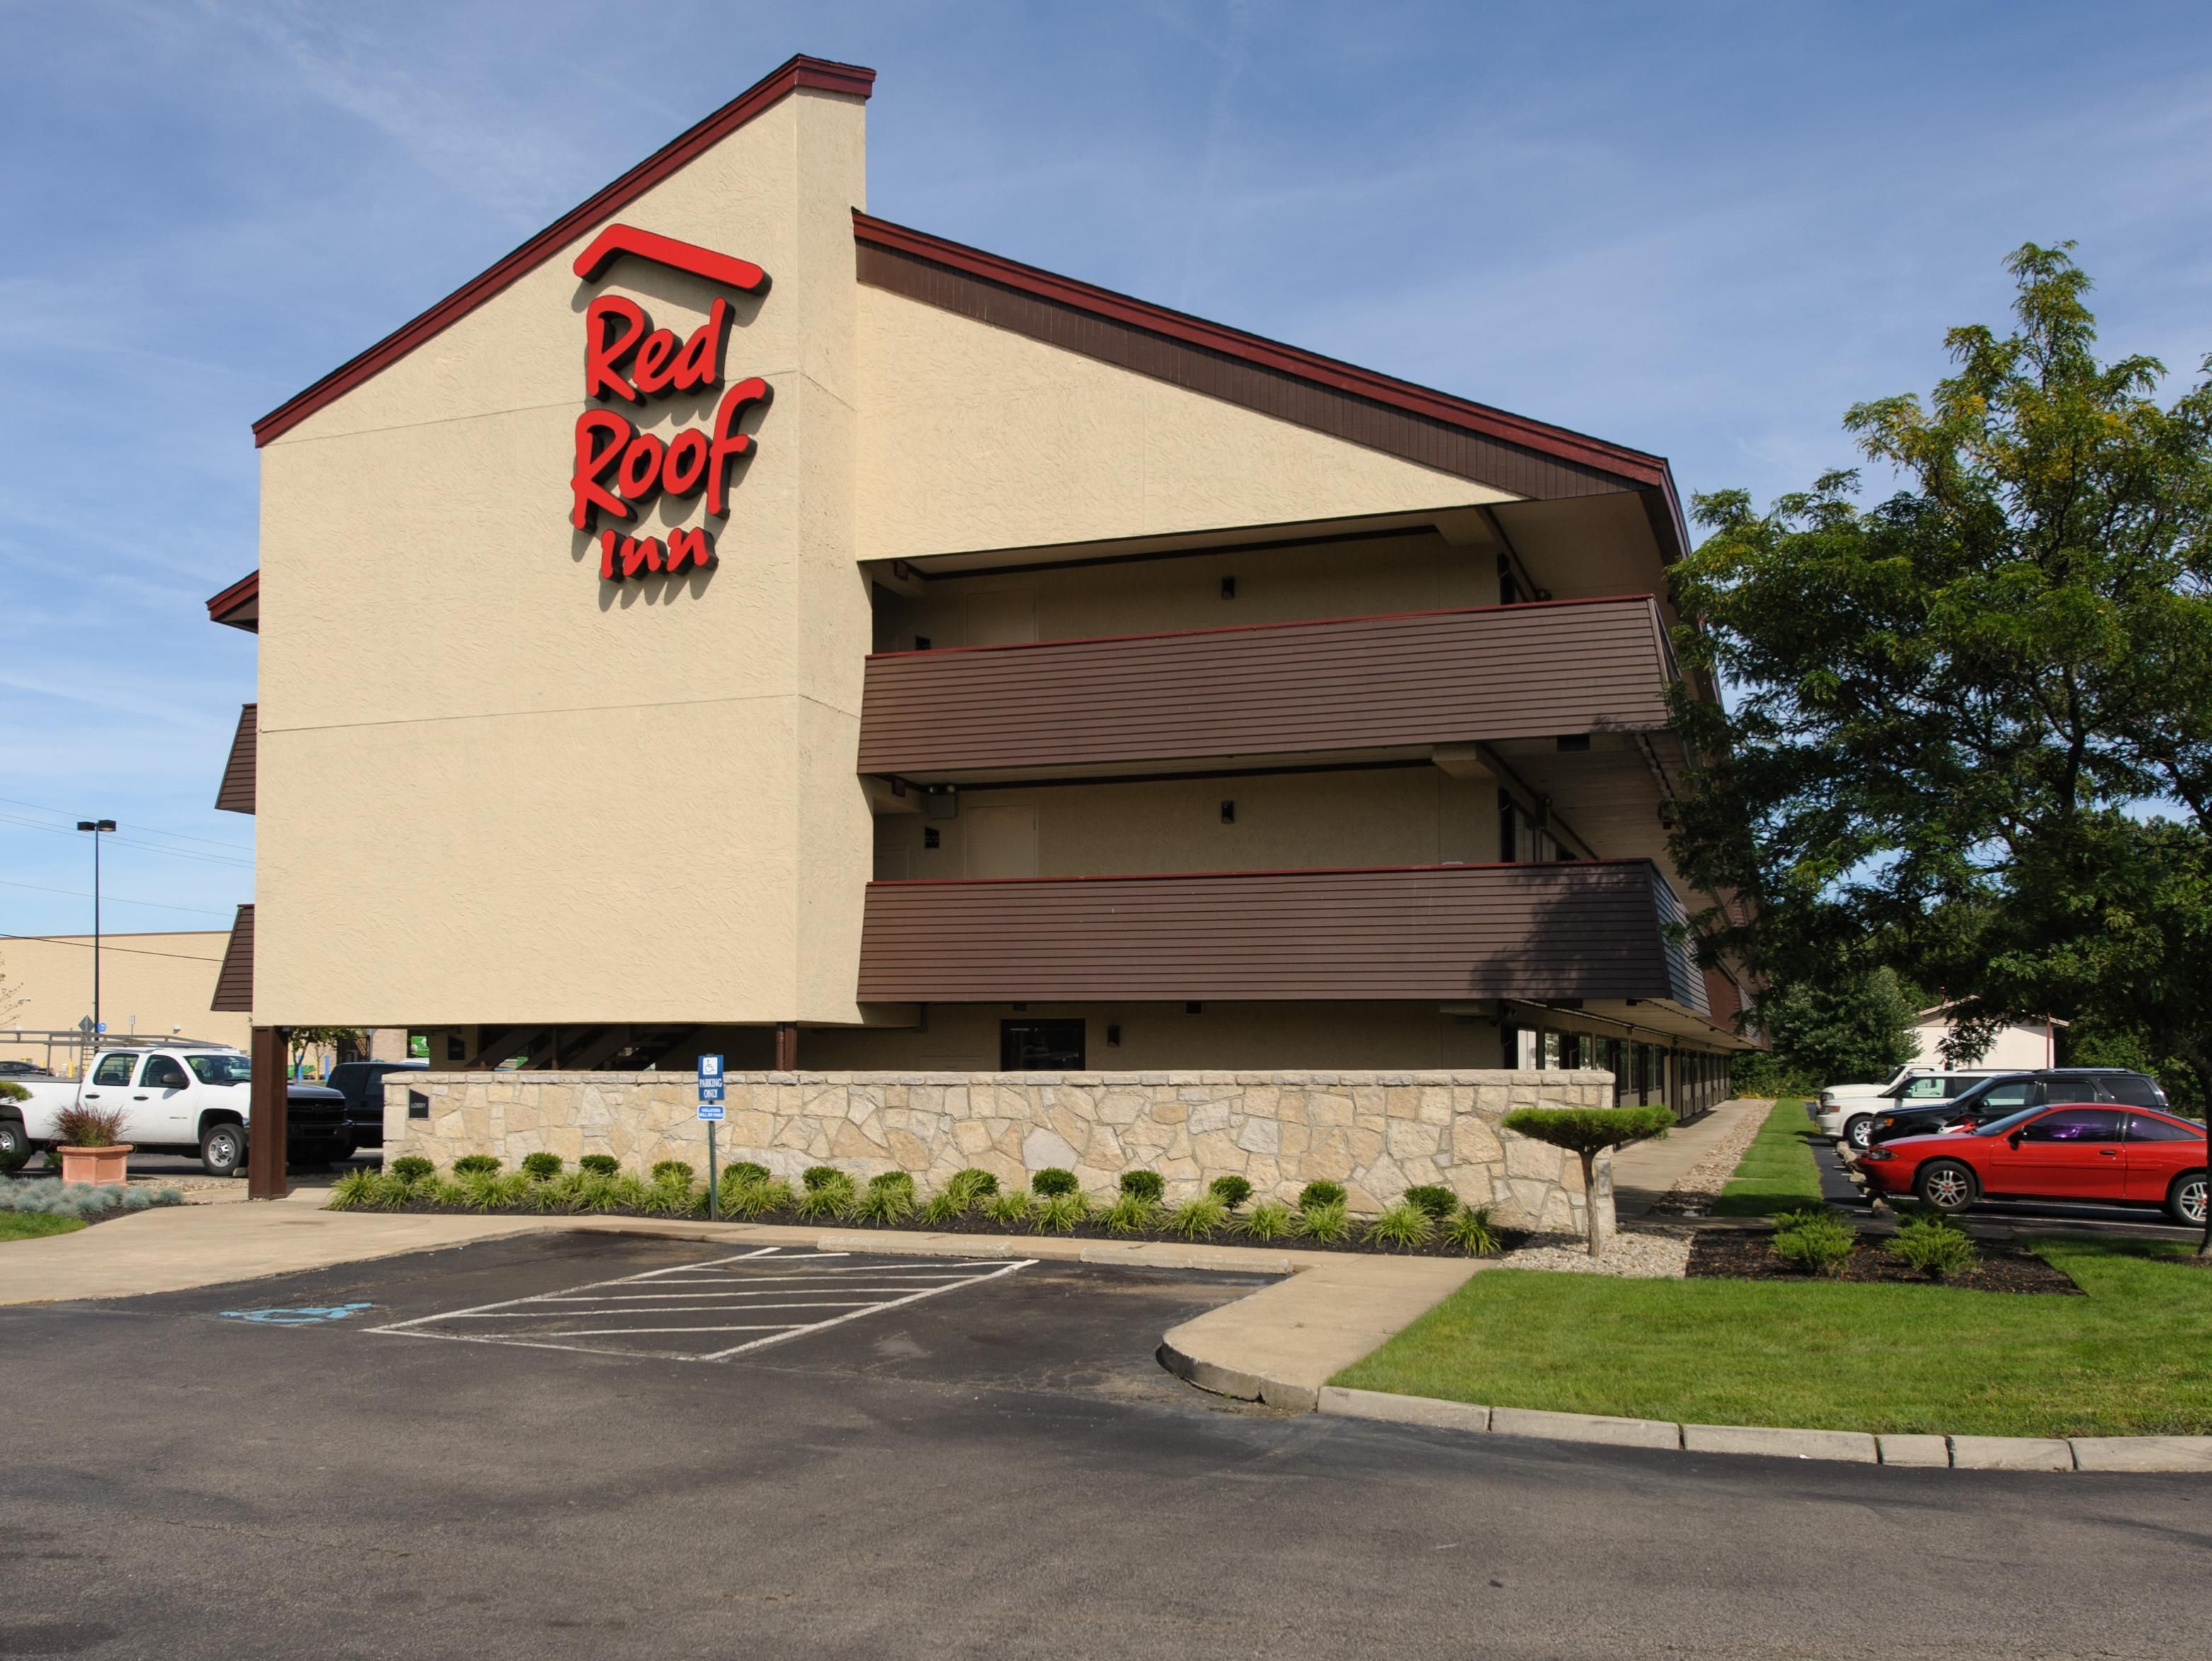 Akron (OH) Red Roof Inn Akron United States, North America Set In A